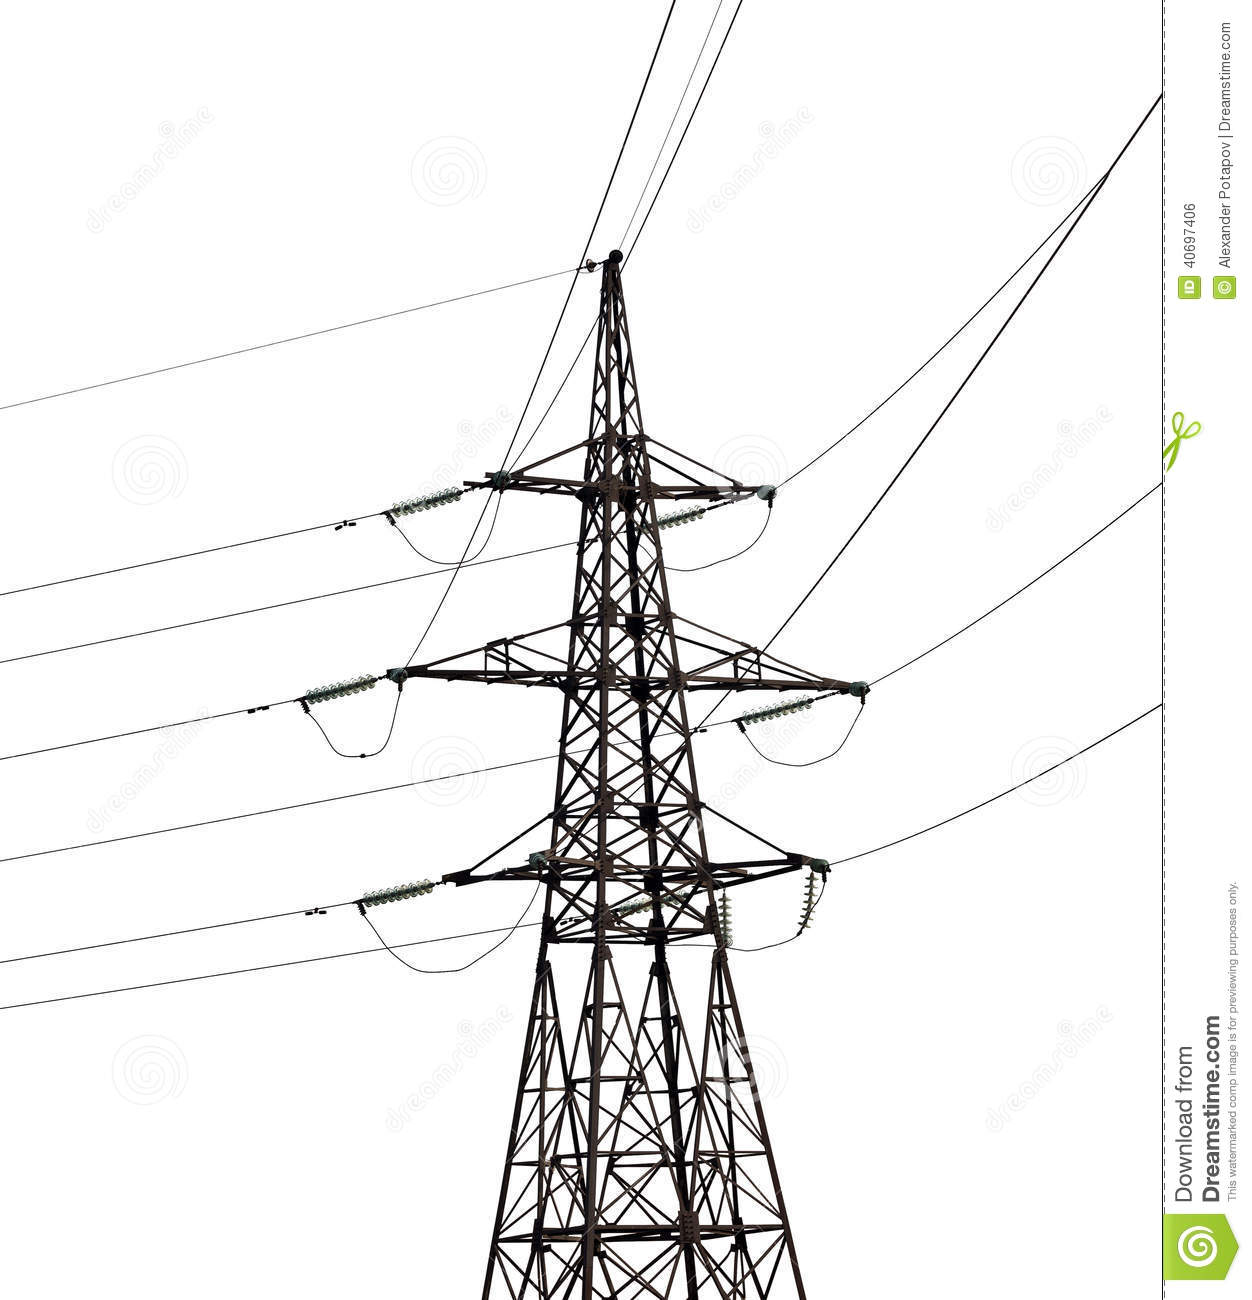 Electrical Pylon Isolated On White Background Stock Photo